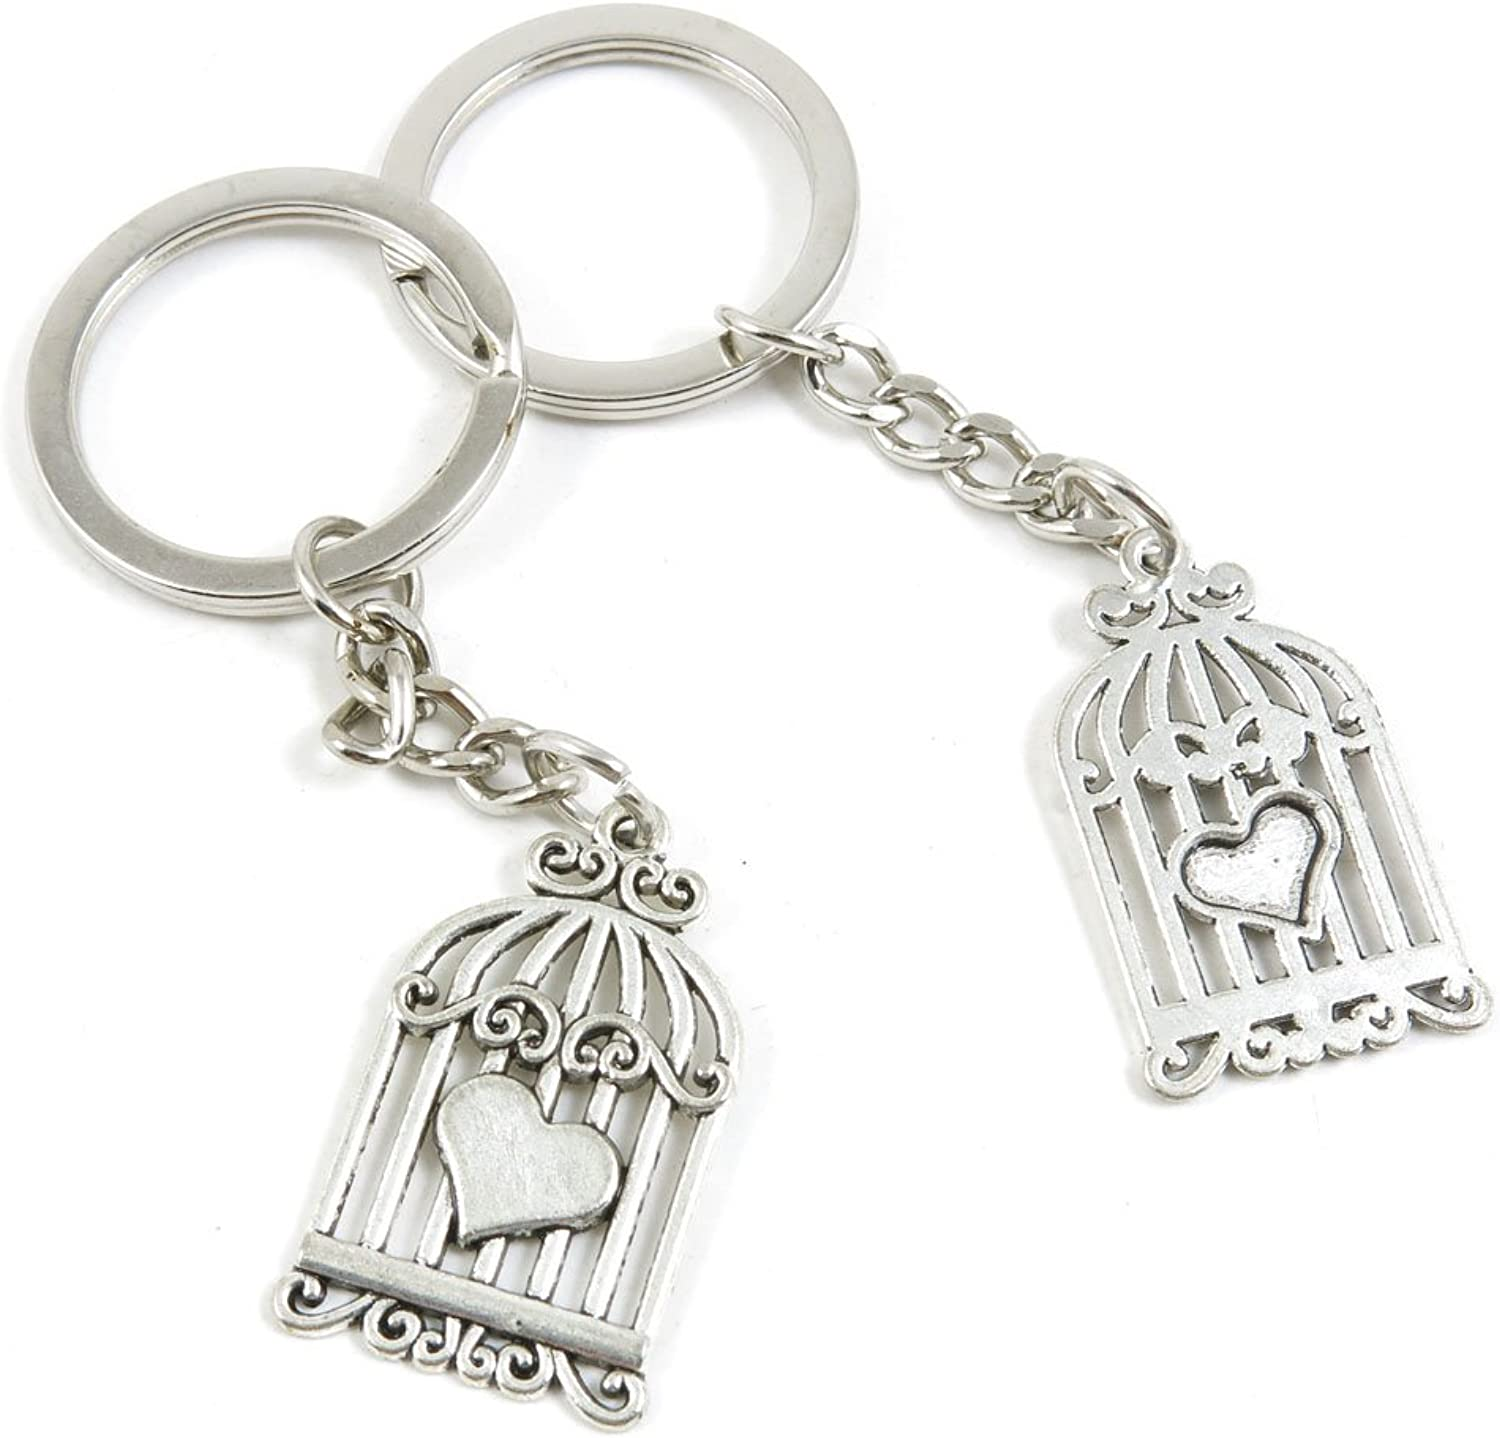 100 Pieces Keychain Keyring Door Car Key Chain Ring Tag Charms Bulk Supply Jewelry Making Clasp Findings B0SR5S Heart Bird Cage Birdcage